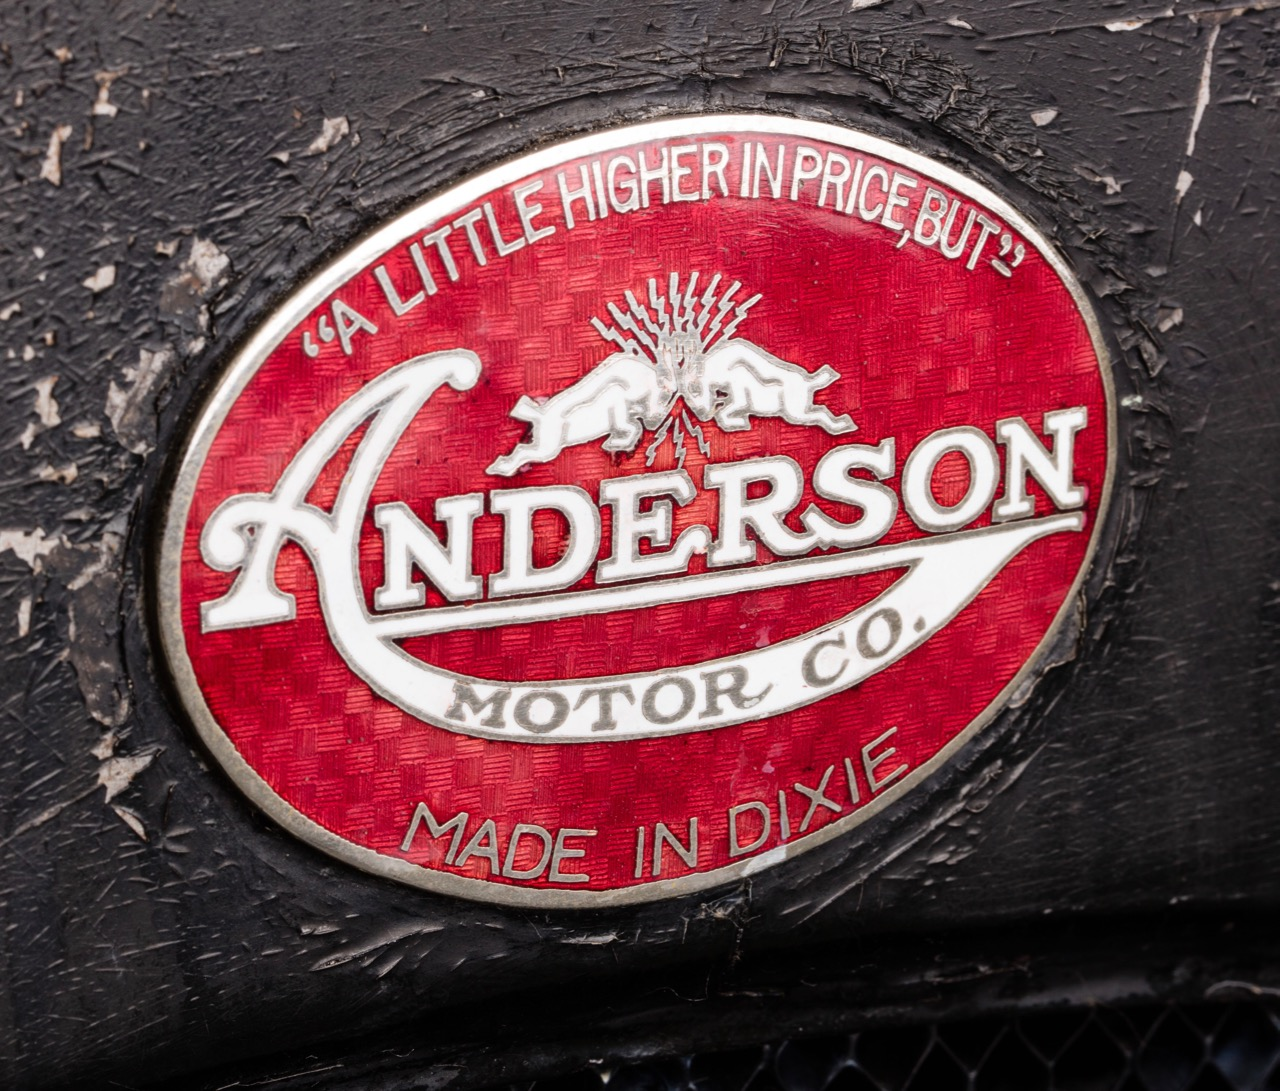 The Anderson logo